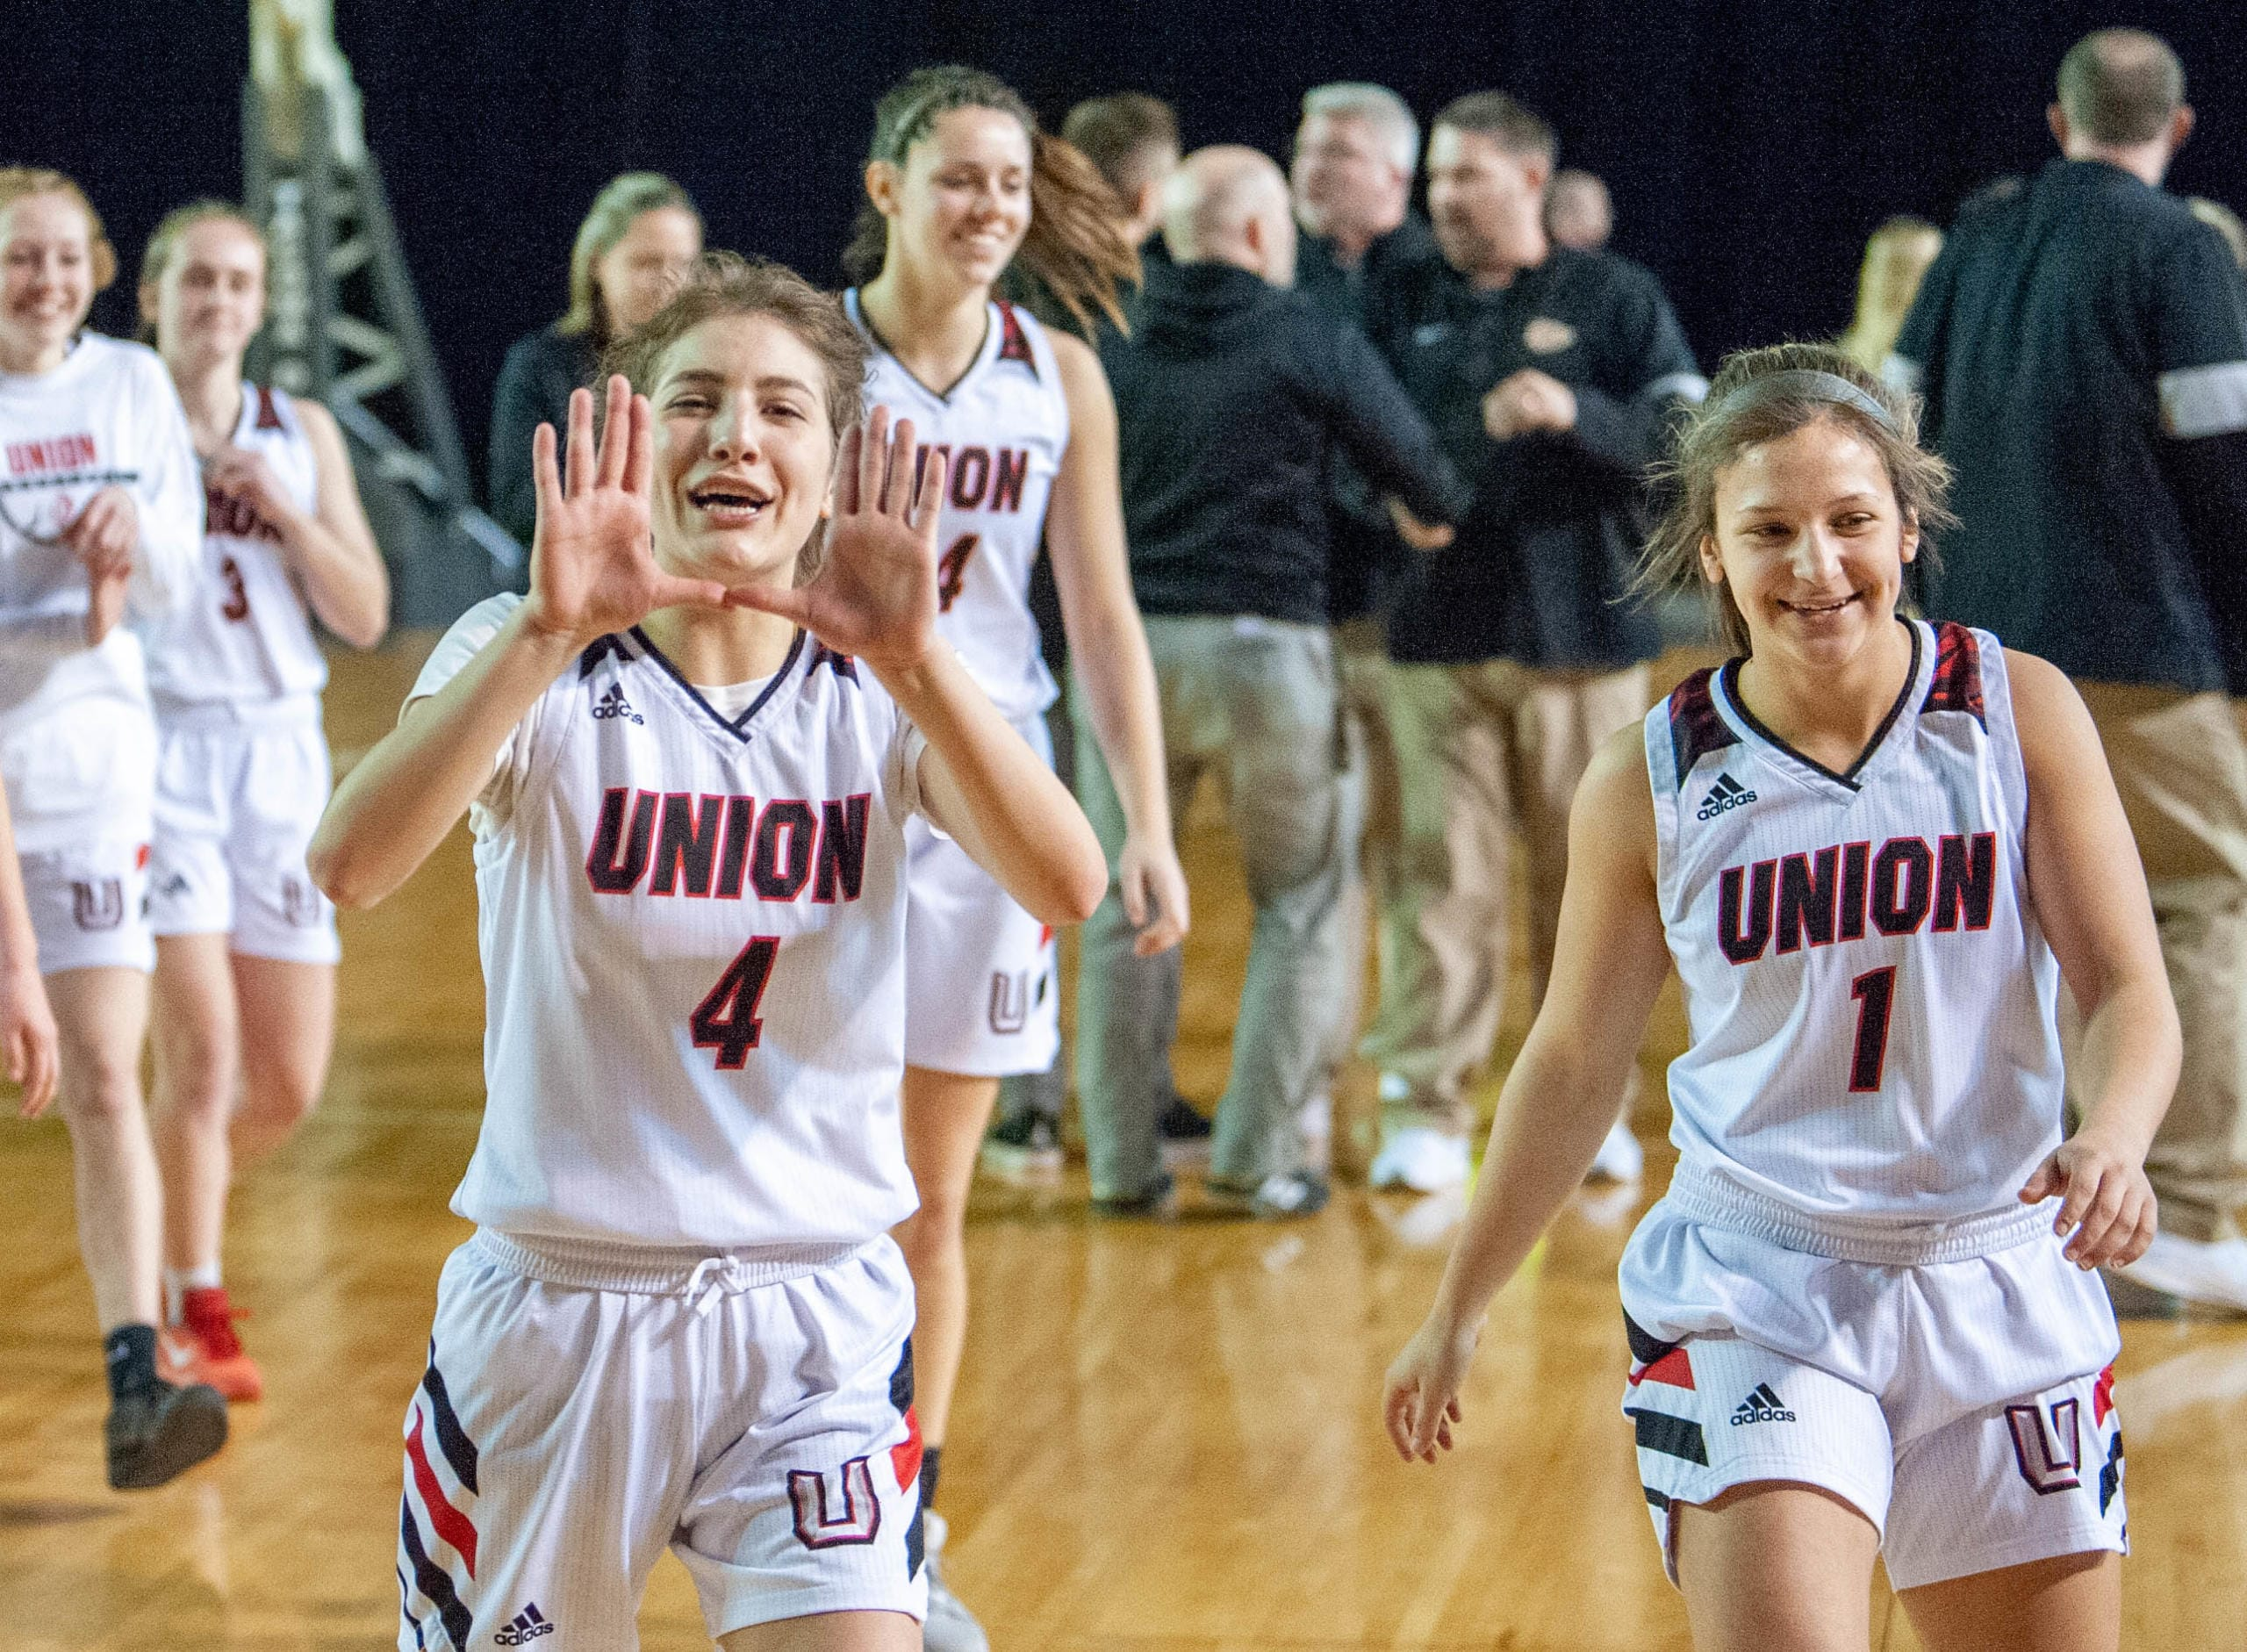 Union's Mason Oberg makes the U sign as she walks off the floor after a 4A State quarterfinal game on Thursday at the Tacoma Dome.  (Joshua Hart/The Columbian)